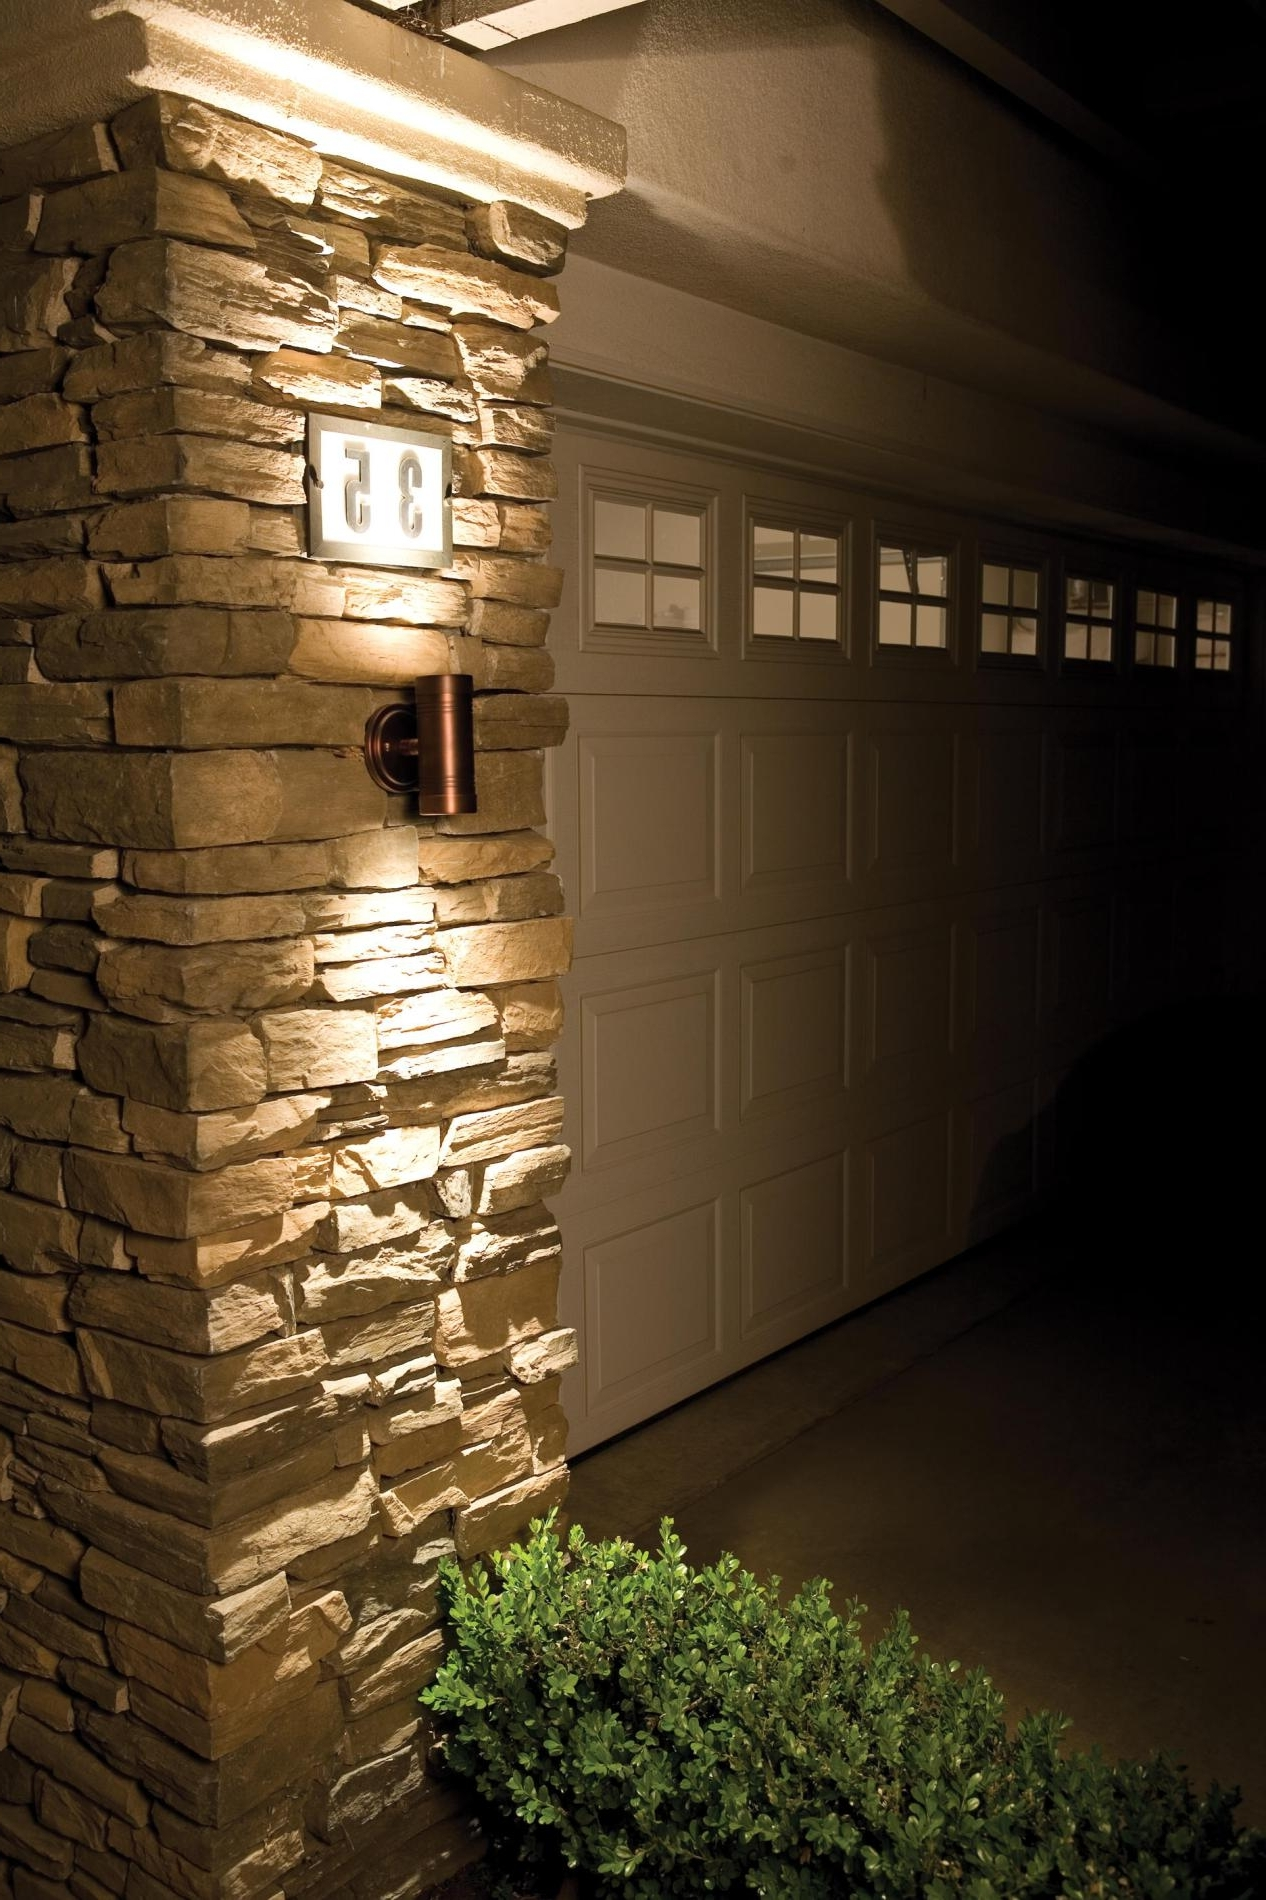 Outdoor Wall Led Lighting Fixtures Intended For Latest Impressive Outdoor Light Fixtures Featuring Two Ways Led Wall Sconce (View 17 of 20)